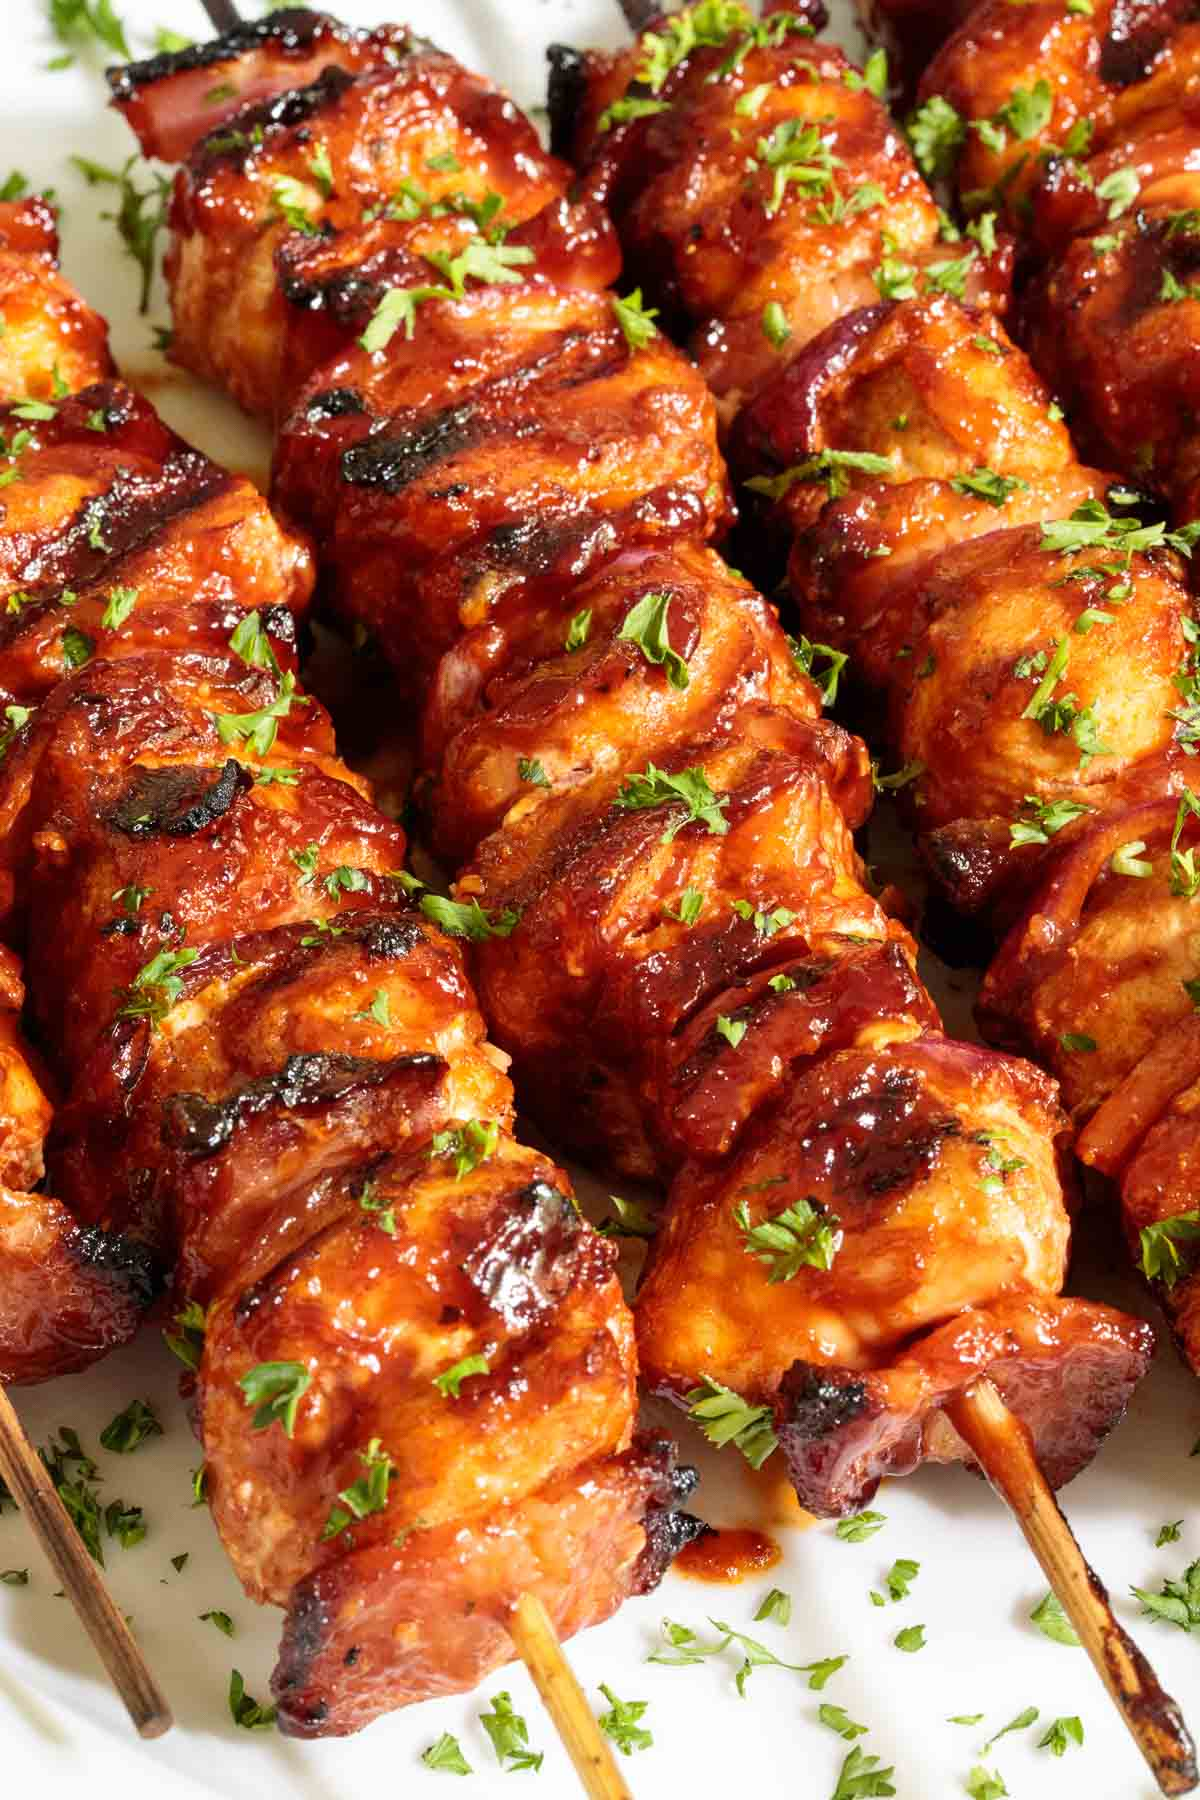 Ultra closeup photo of a row of Bacon Bourbon Barbecued Chicken Skewers finished and garnished with cilantro.